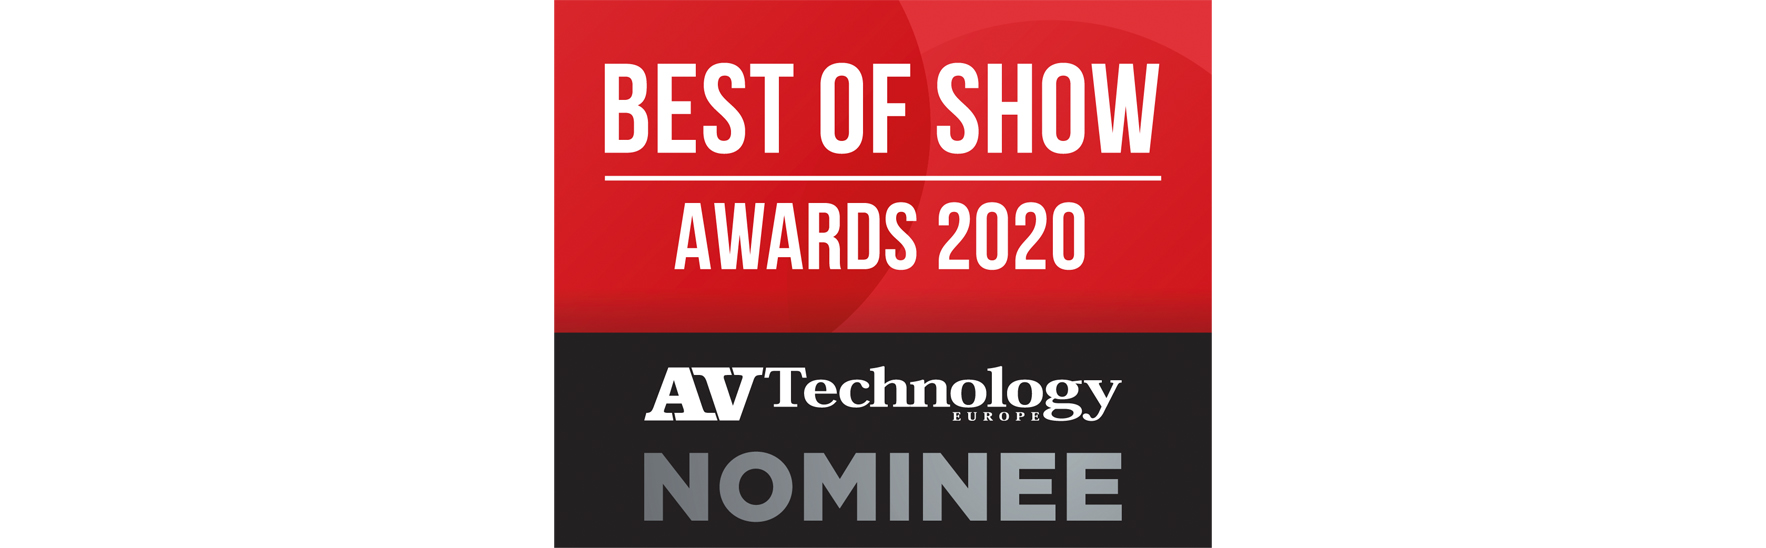 ISE Best of Show Awards 2020